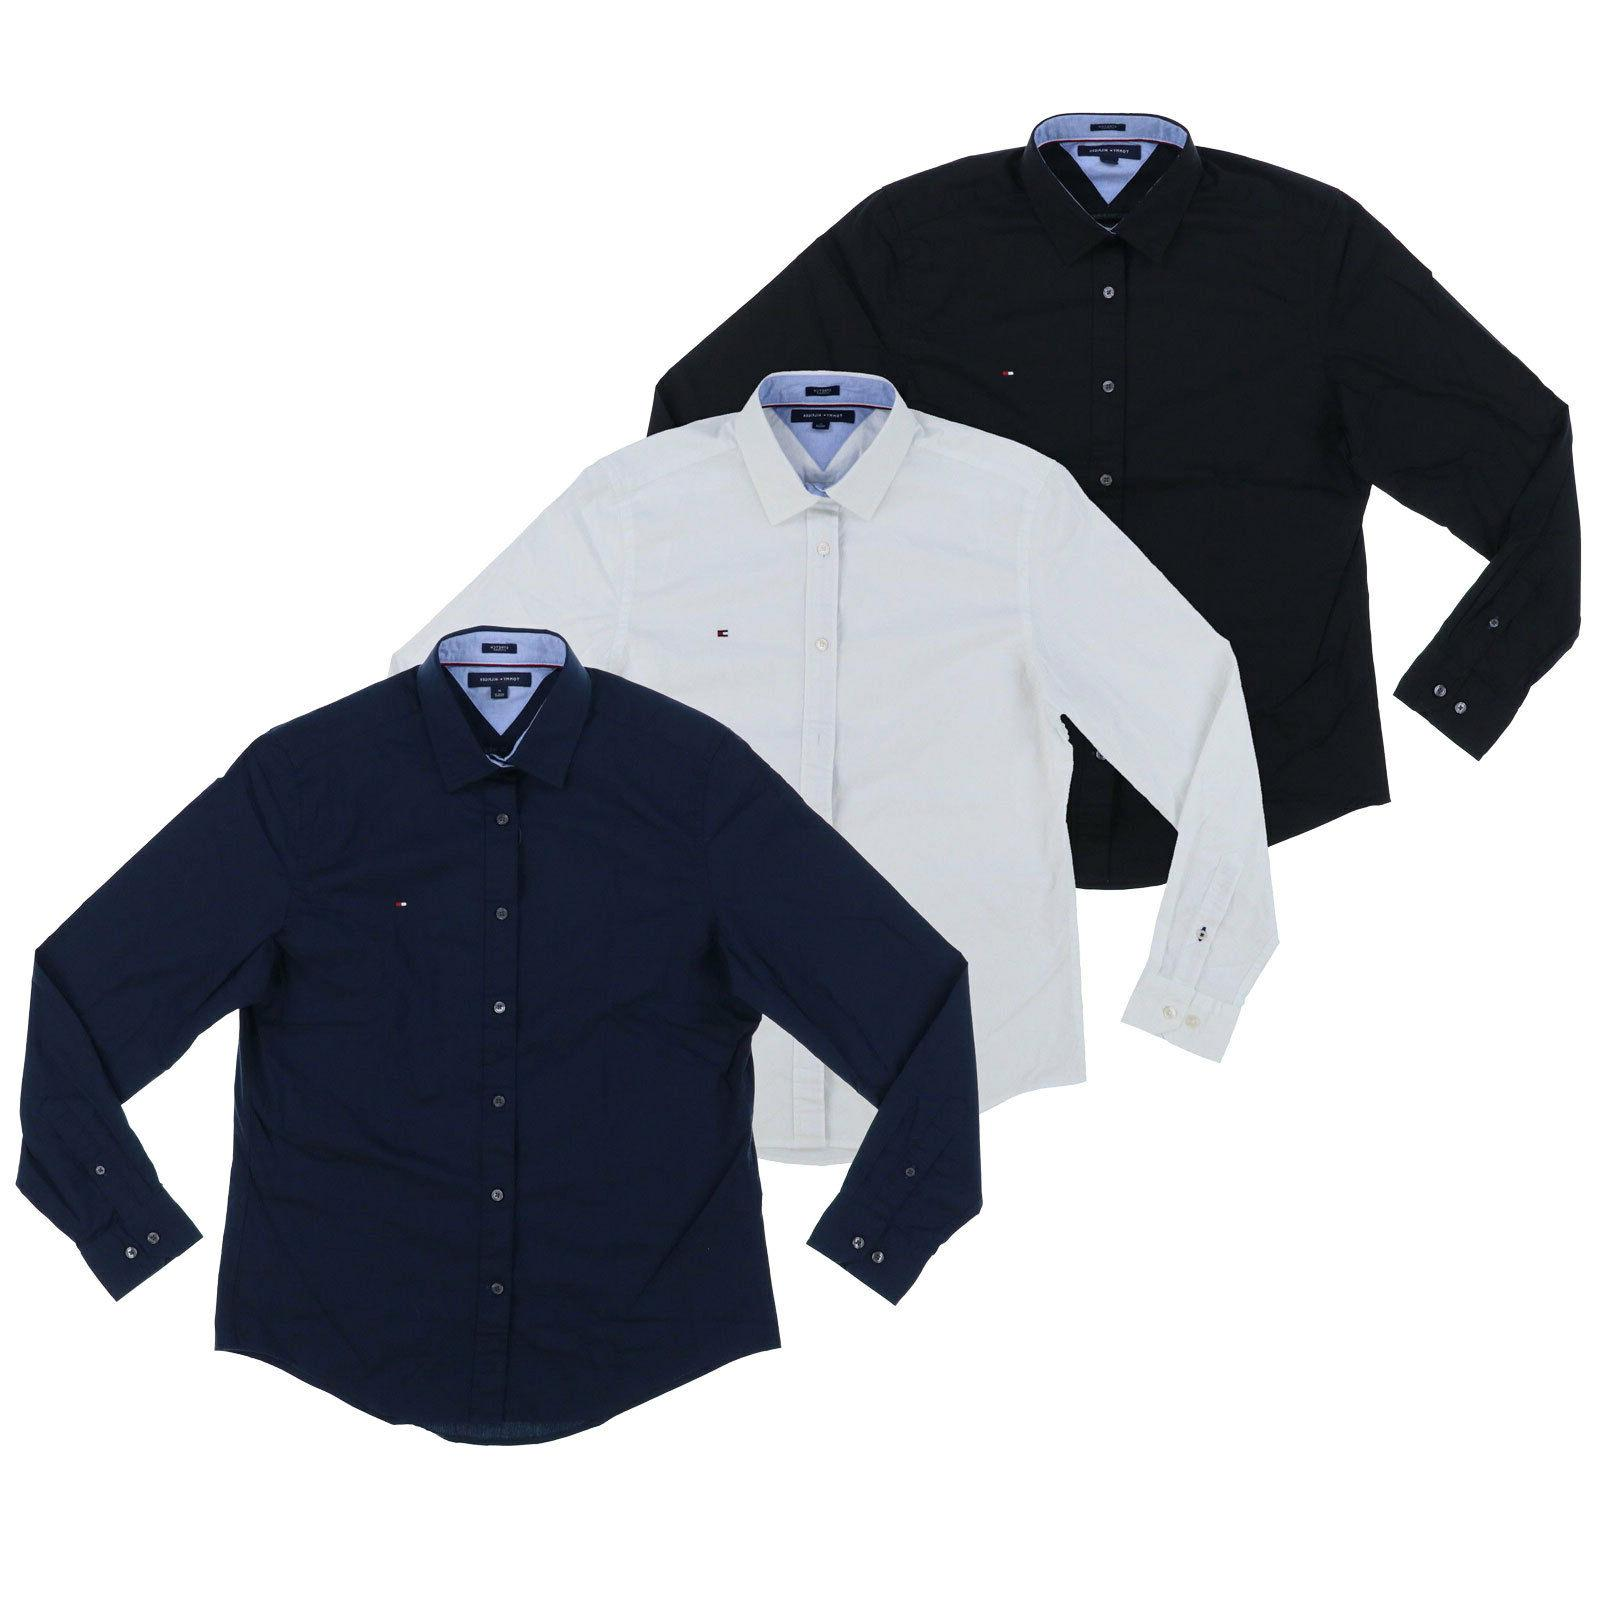 Tommy Hilfiger Shirt Mens Long Sleeve Button Up Stretch Top